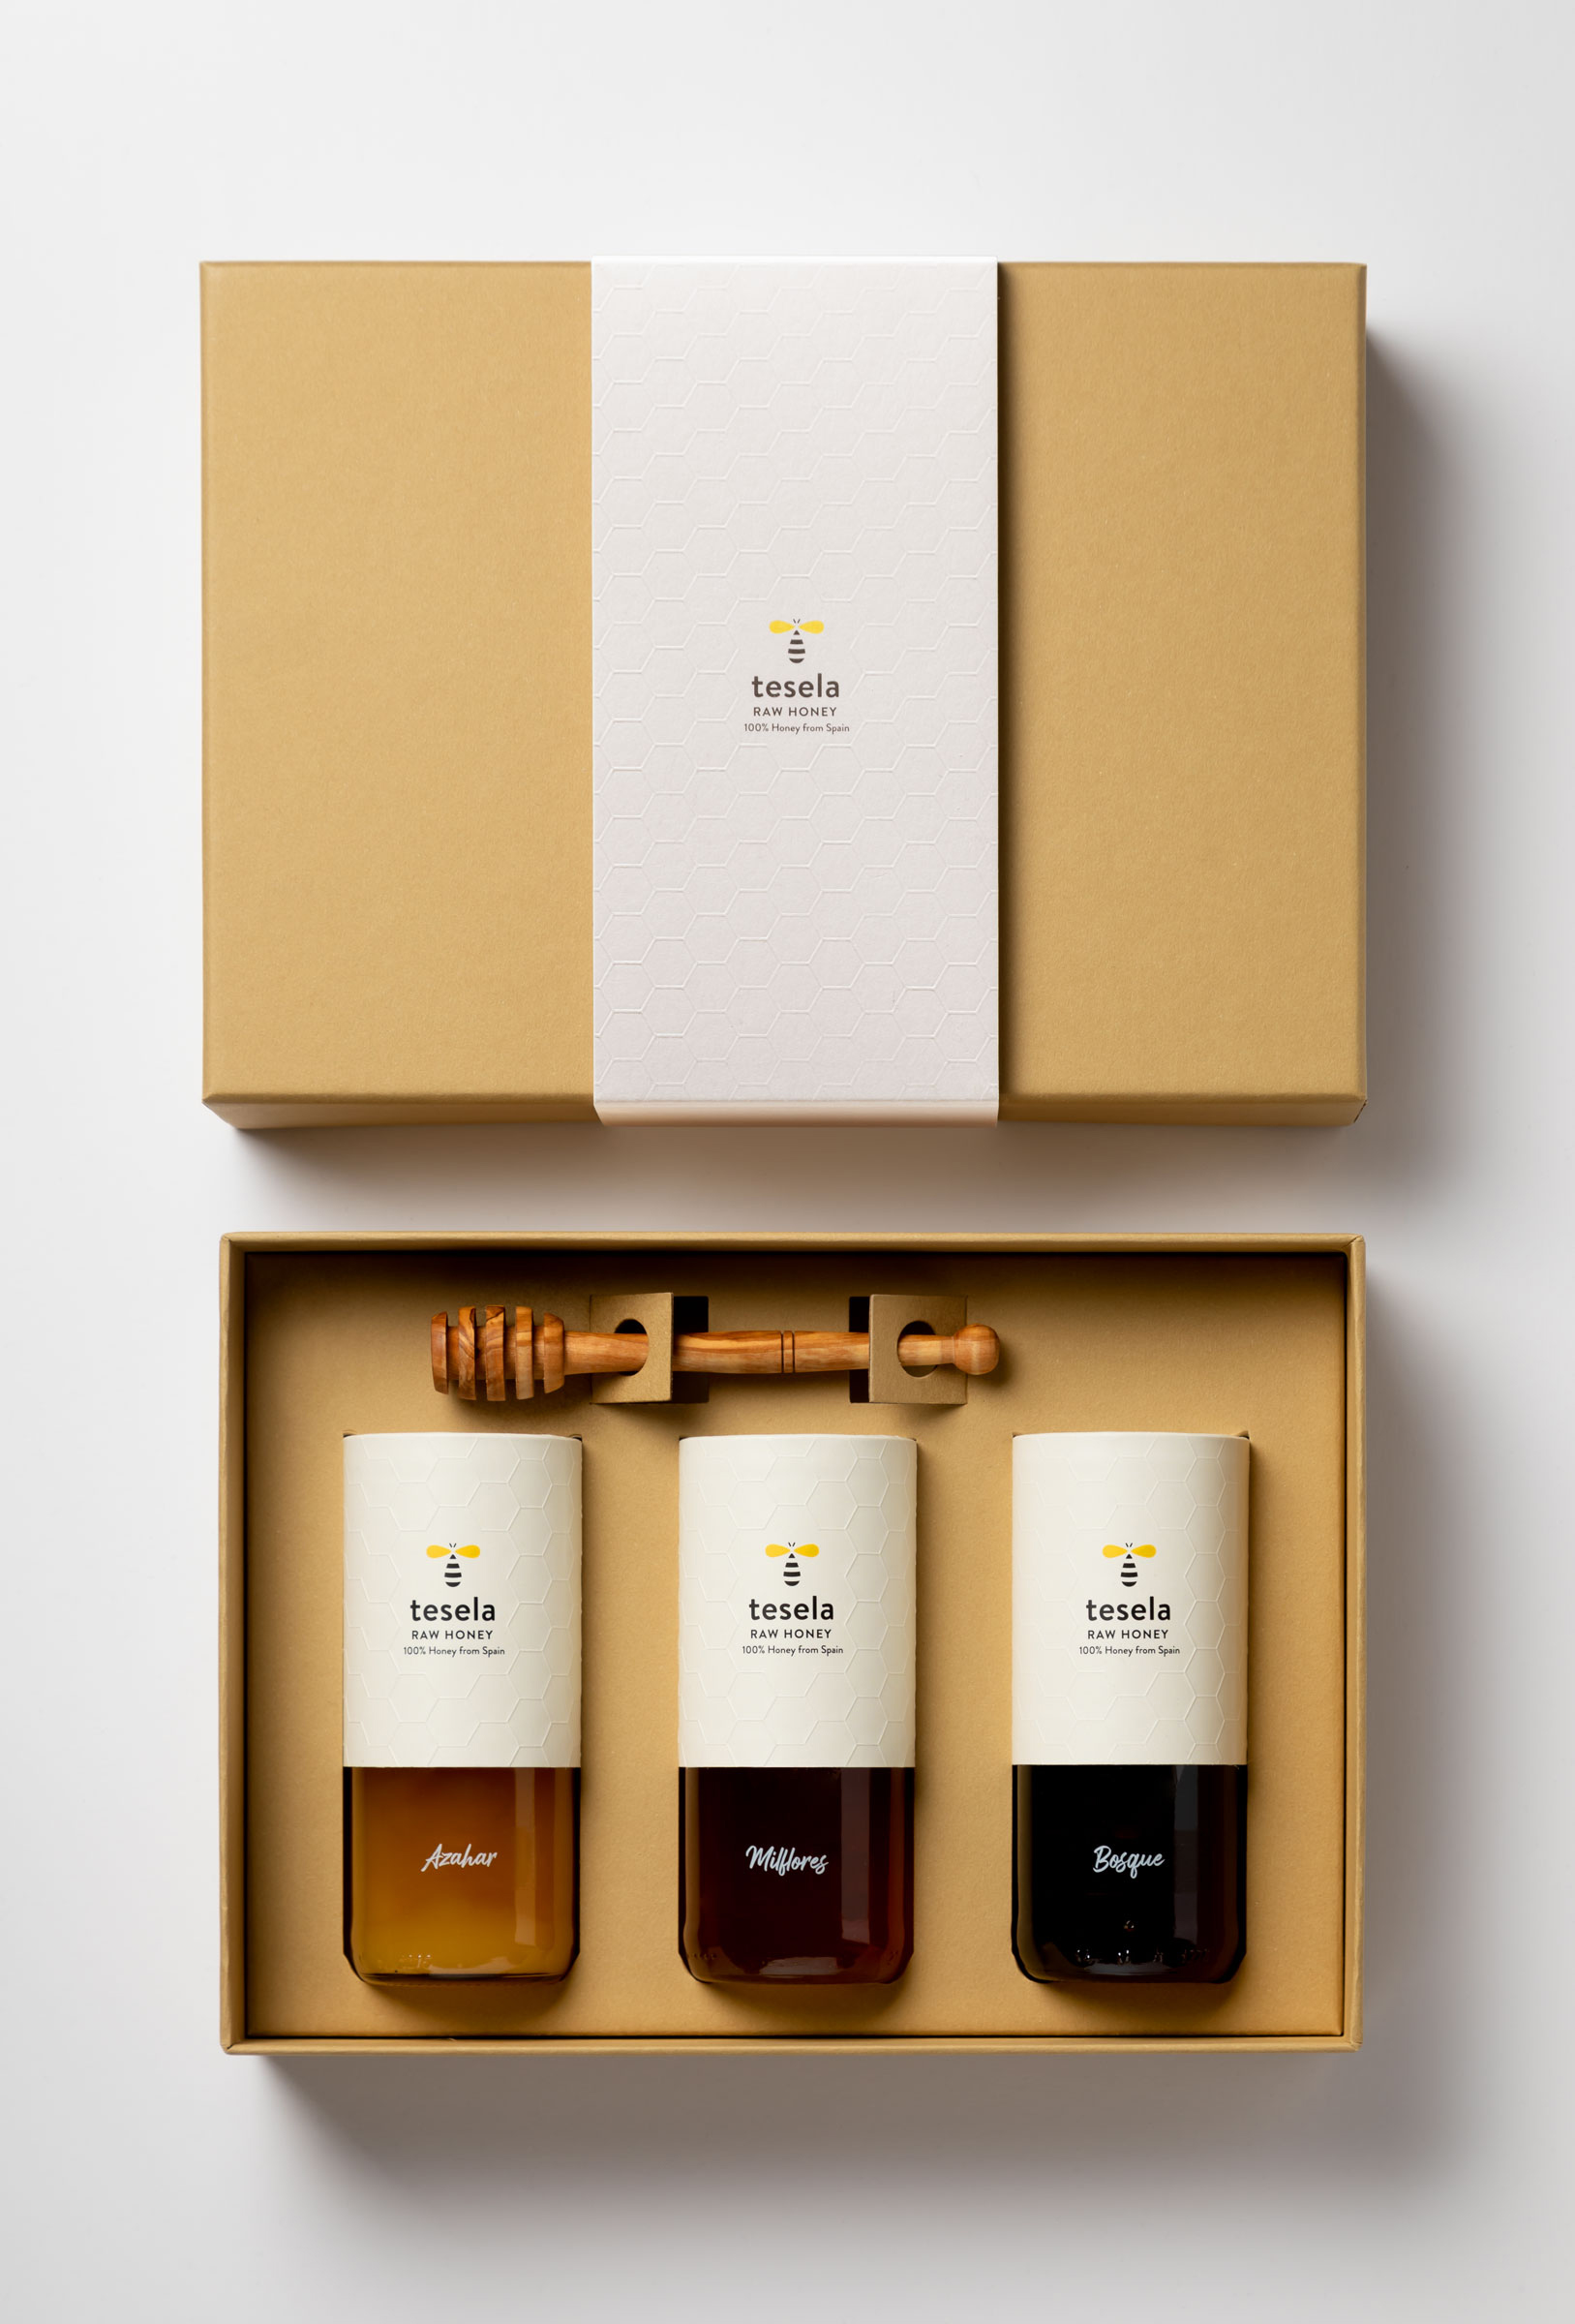 Tesela is a Premium-Quality, Natural Honey Branding and Packaging Design by Ideologo